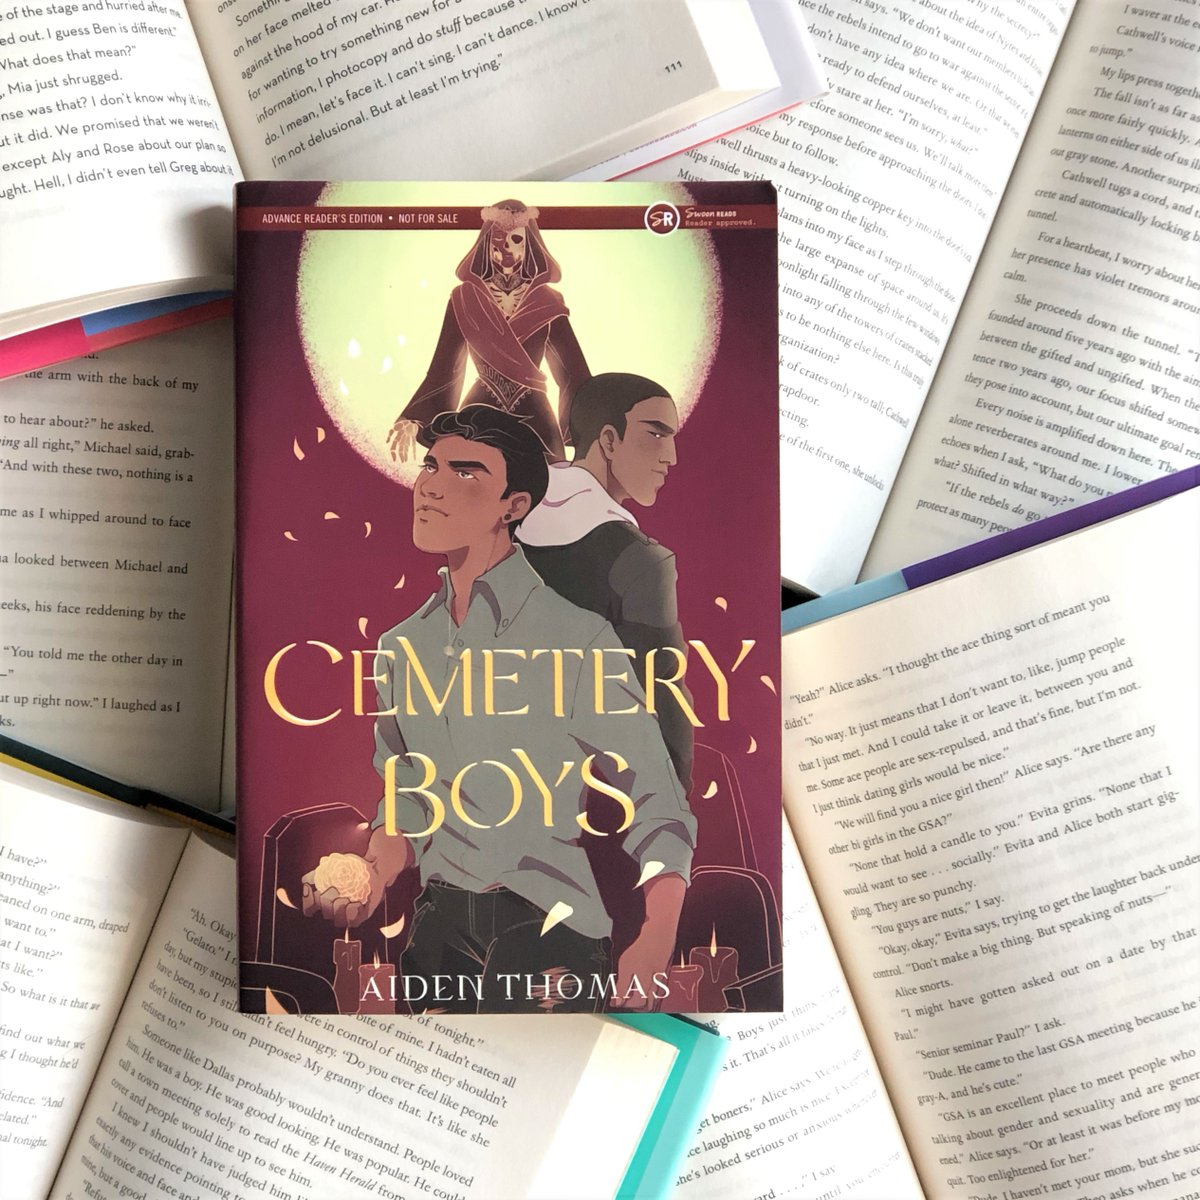 """""""Perfectly balances the vibrant, energetic Latinx culture while delving into heavy topics like LGBTQ+ acceptance, deportation, colonization, and racism within authoritative establishments."""" — @TeenVogue on @aidenschmaiden's CEMETERY BOYS, out June 9! http://ow.ly/MmPf50yukcypic.twitter.com/Bdkz7PCaUF"""